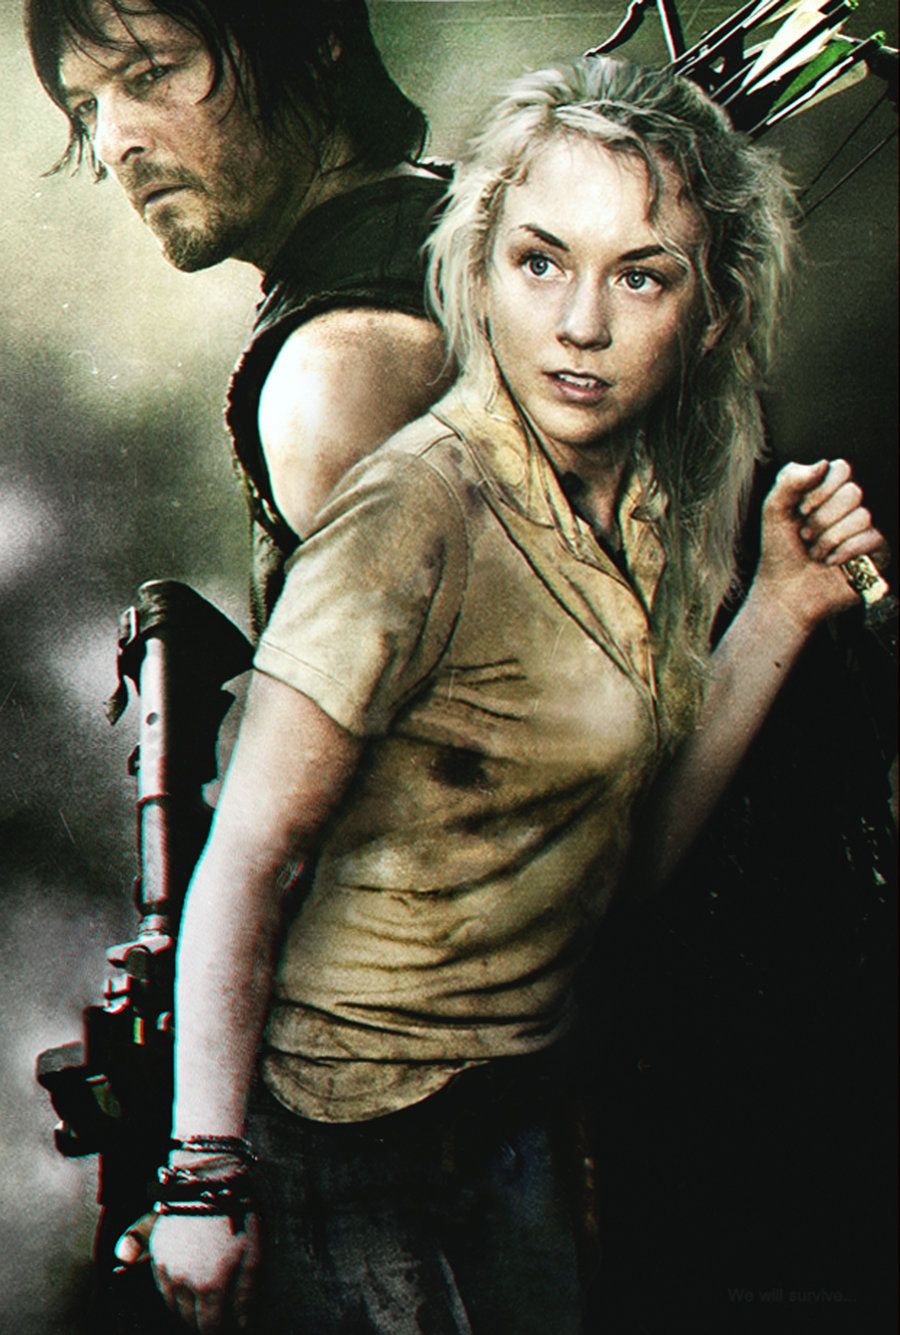 Daryl And Beth 3 By Phlegmaticperson On Deviantart Com Imagens